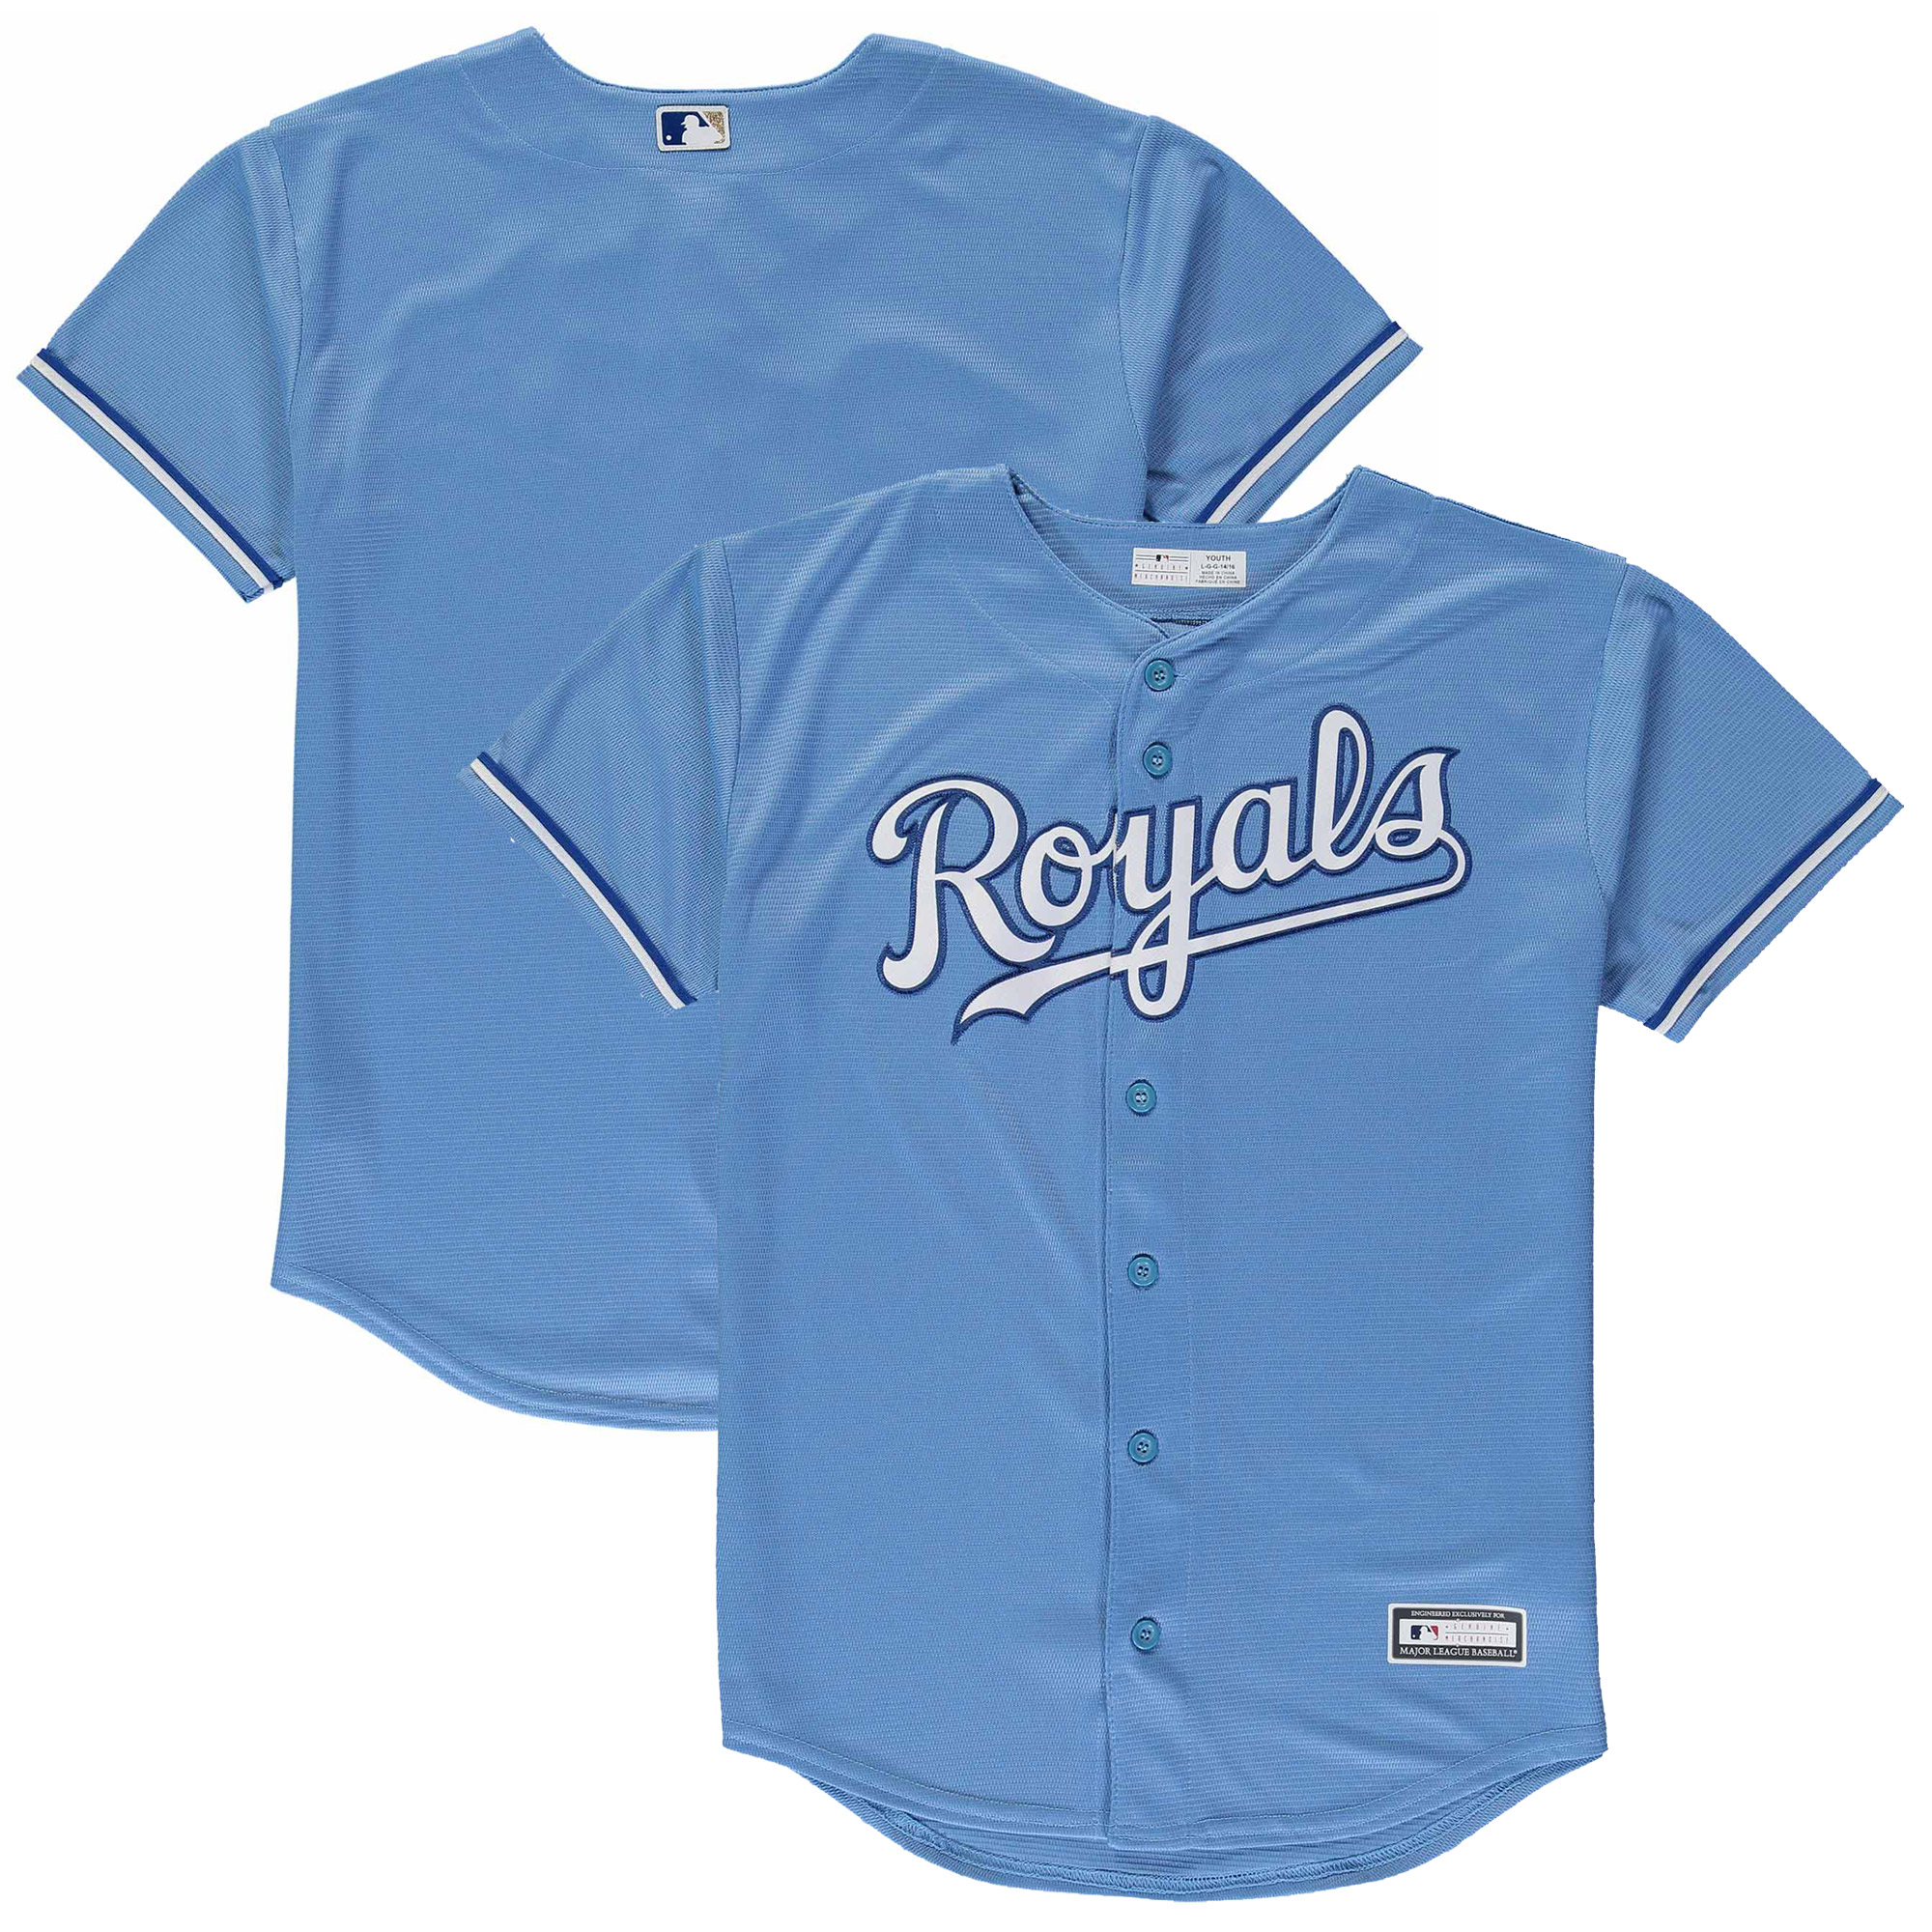 Kansas City Royals Youth Replica Blank Team Jersey - Light Blue